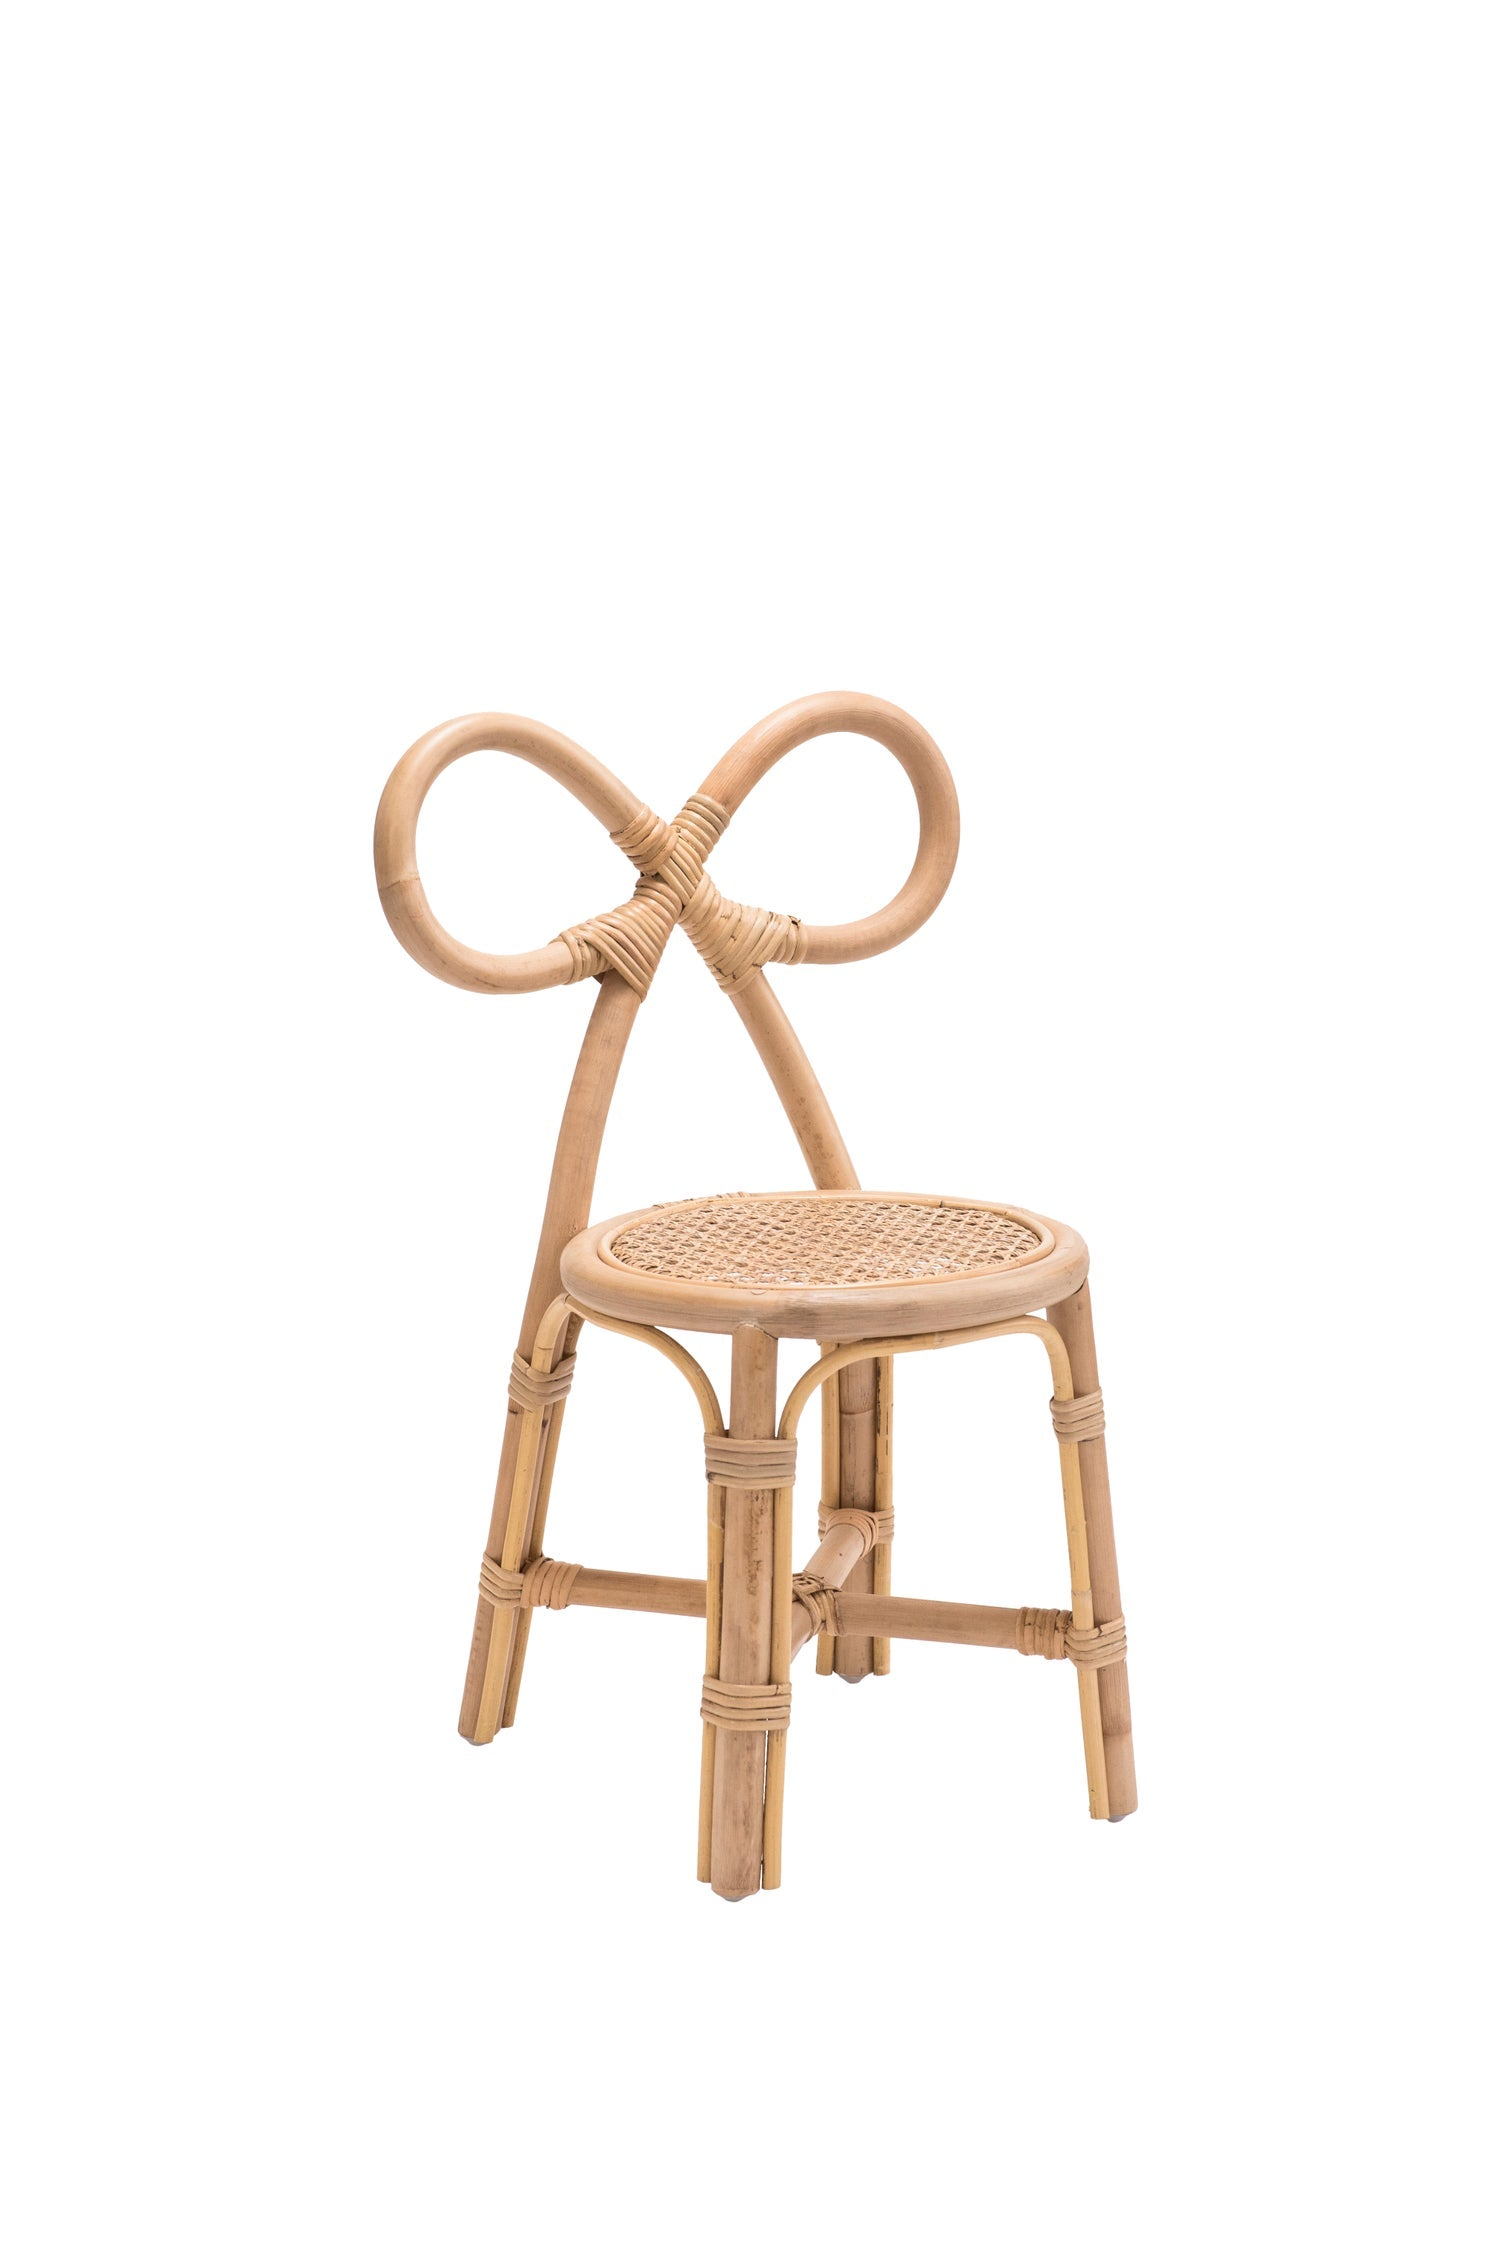 Poppie Toys Bow Chair